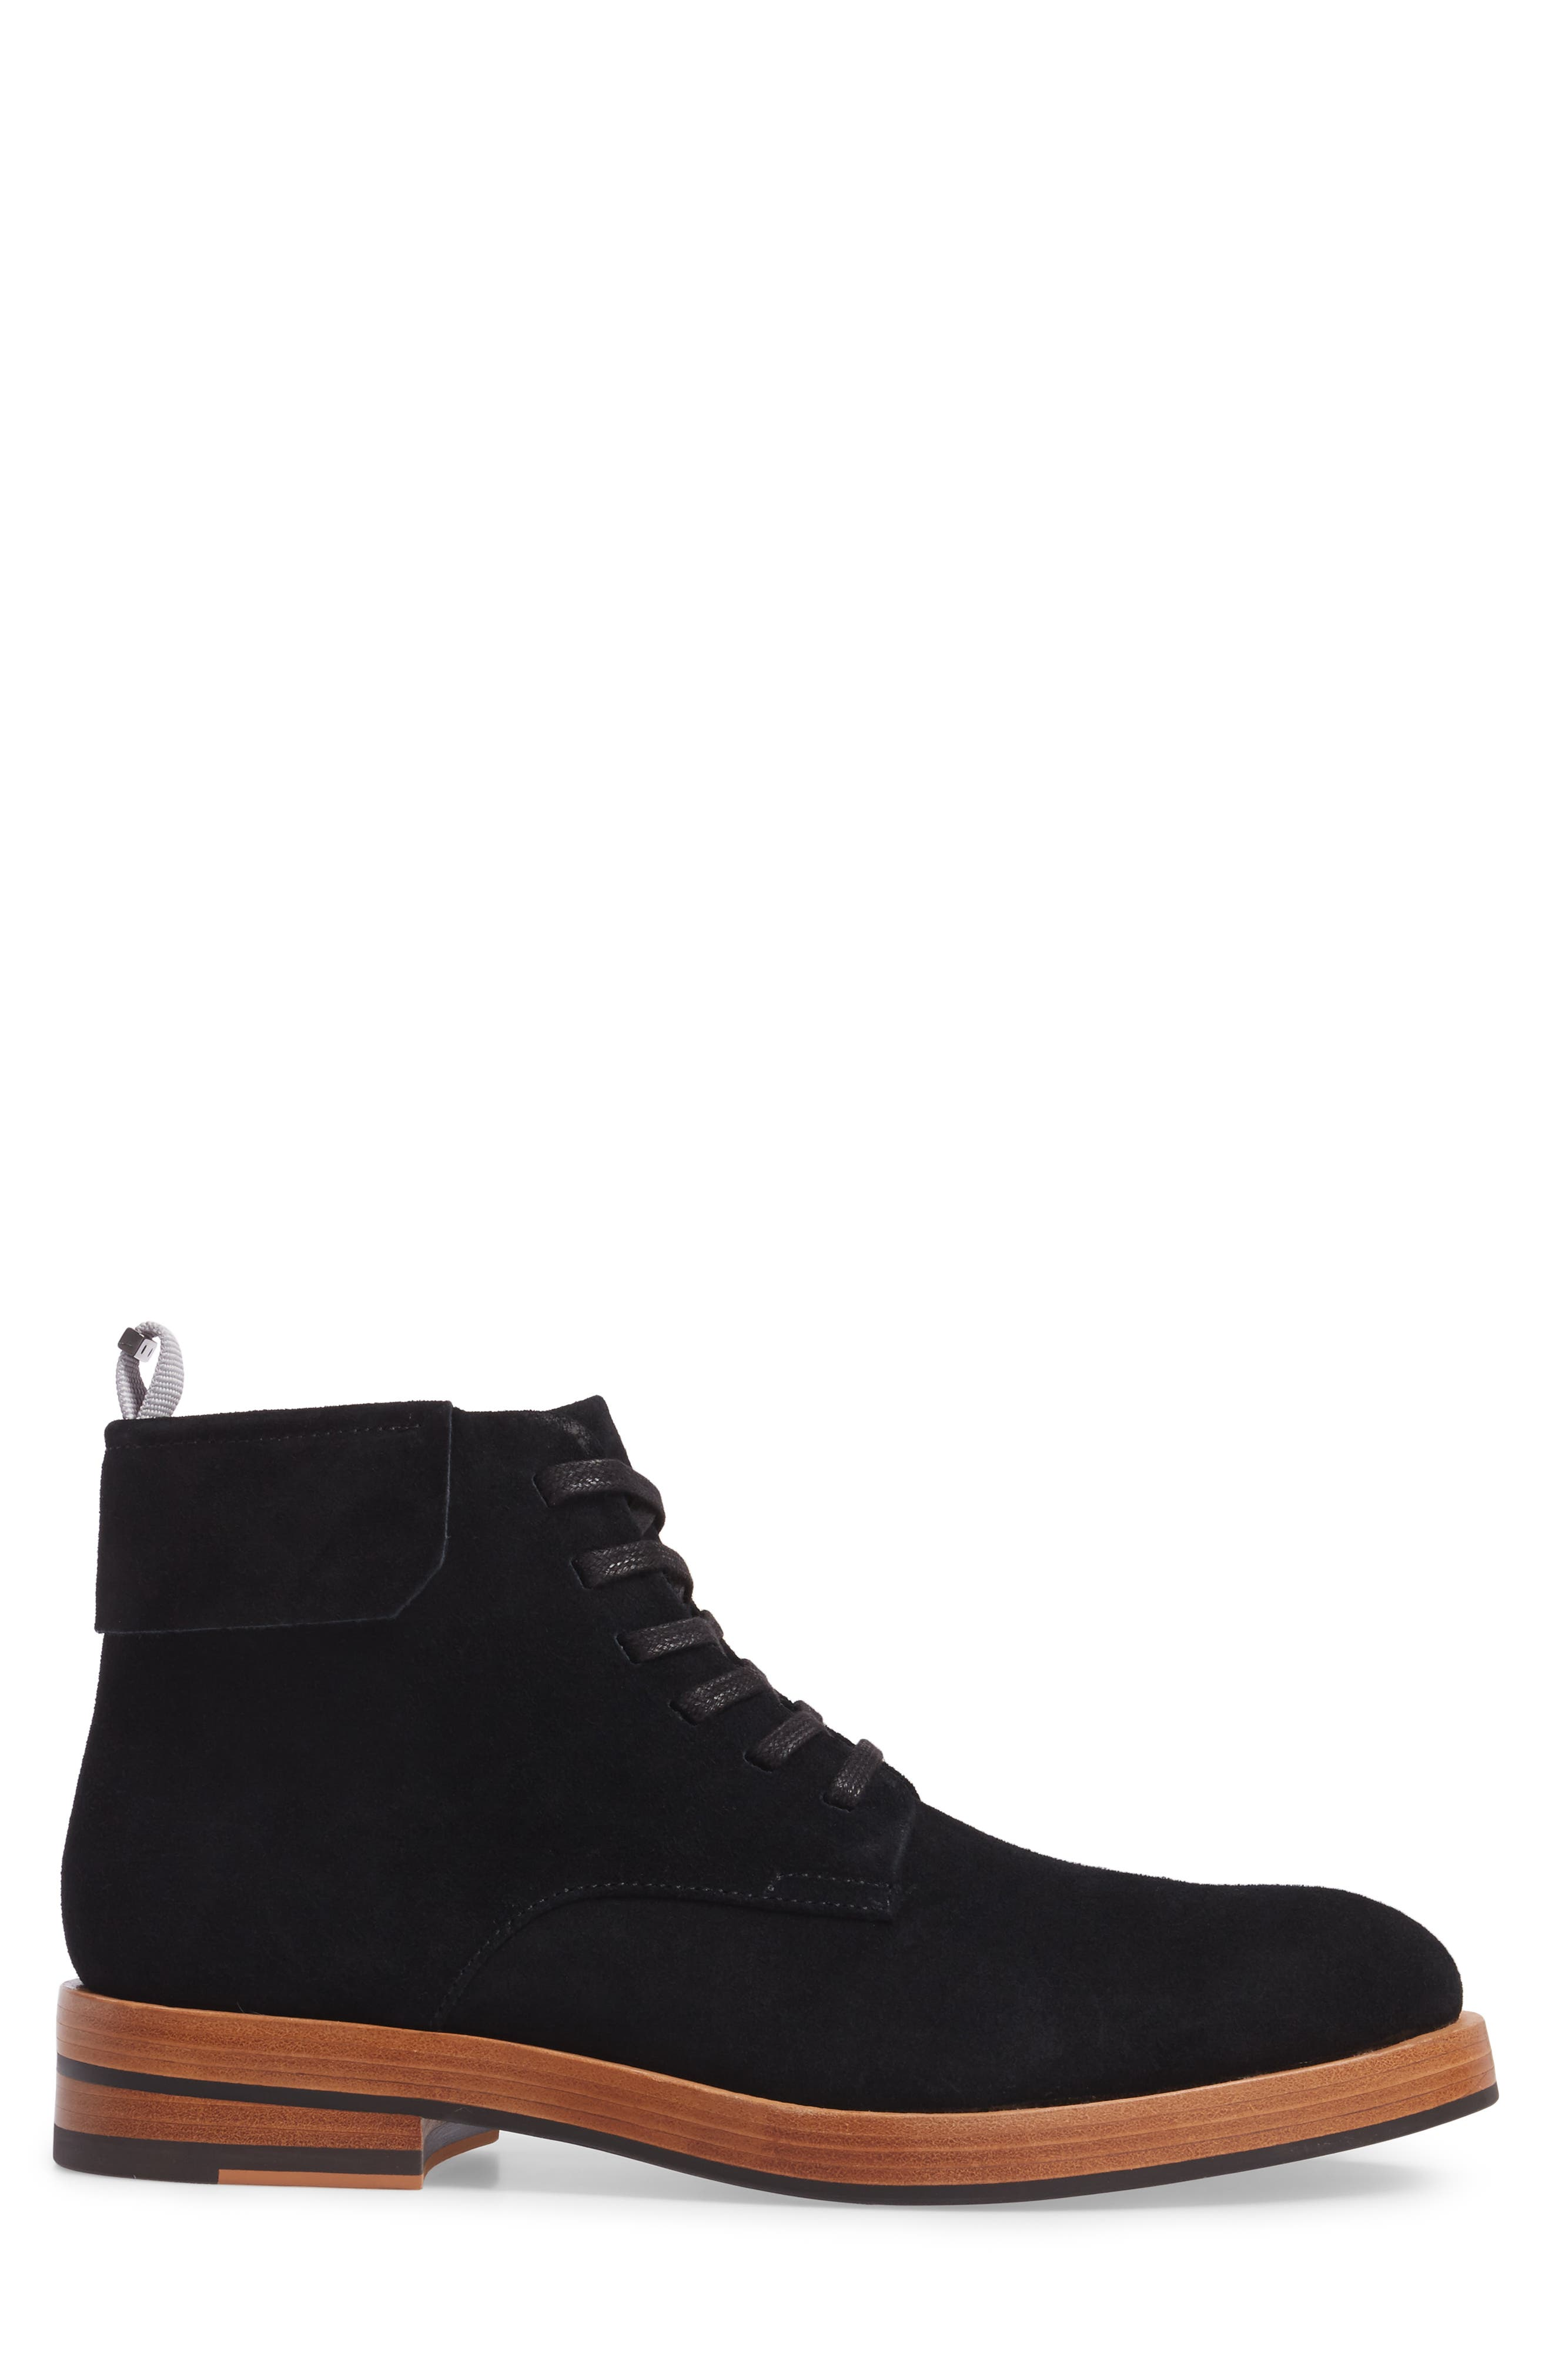 Alternate Image 3  - Calvin Klein Radburn Plain Toe Boot (Men)